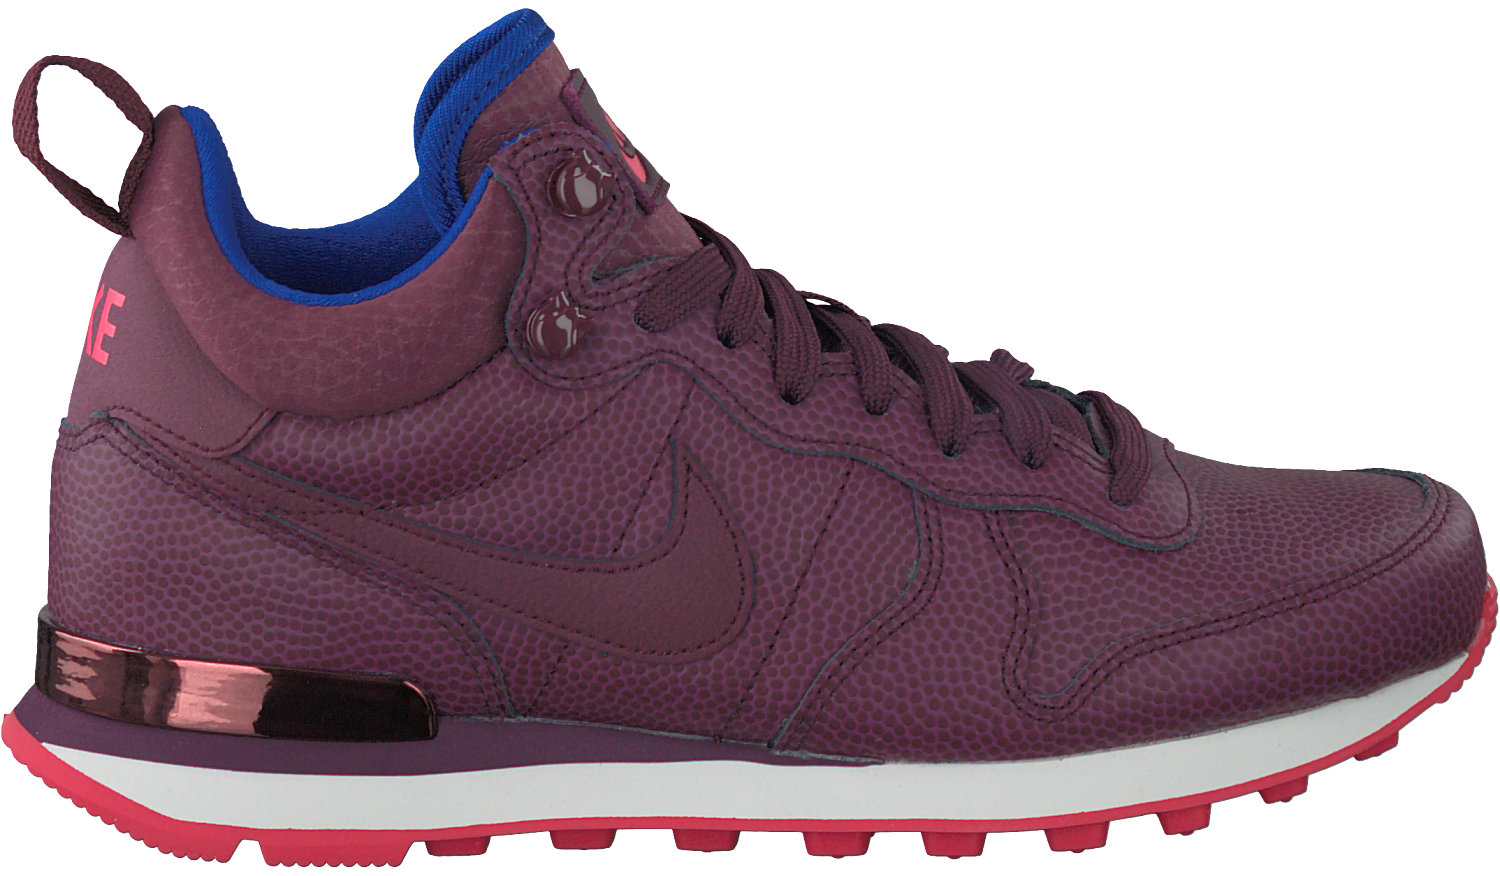 Rode NIKE Sneakers INTERNATIONALIST MID DAMES | Omoda